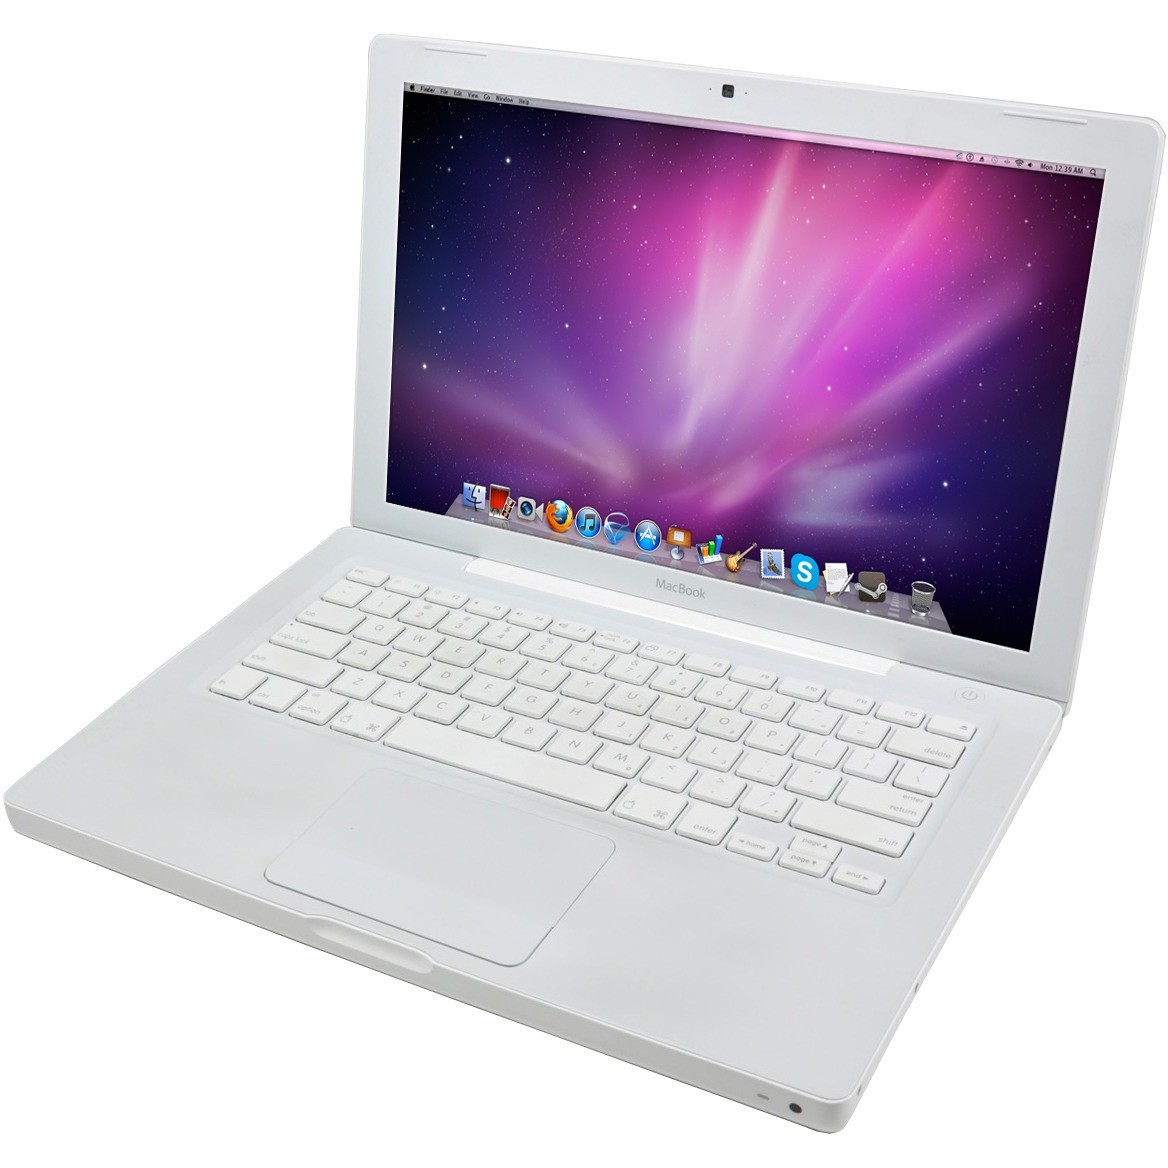 Laptop Second Hand Macbook A1181 T8100  2.1ghz 2gb Ddr2 120gb Sata Dvd Intel Gma X3100 13.3inch Webcam